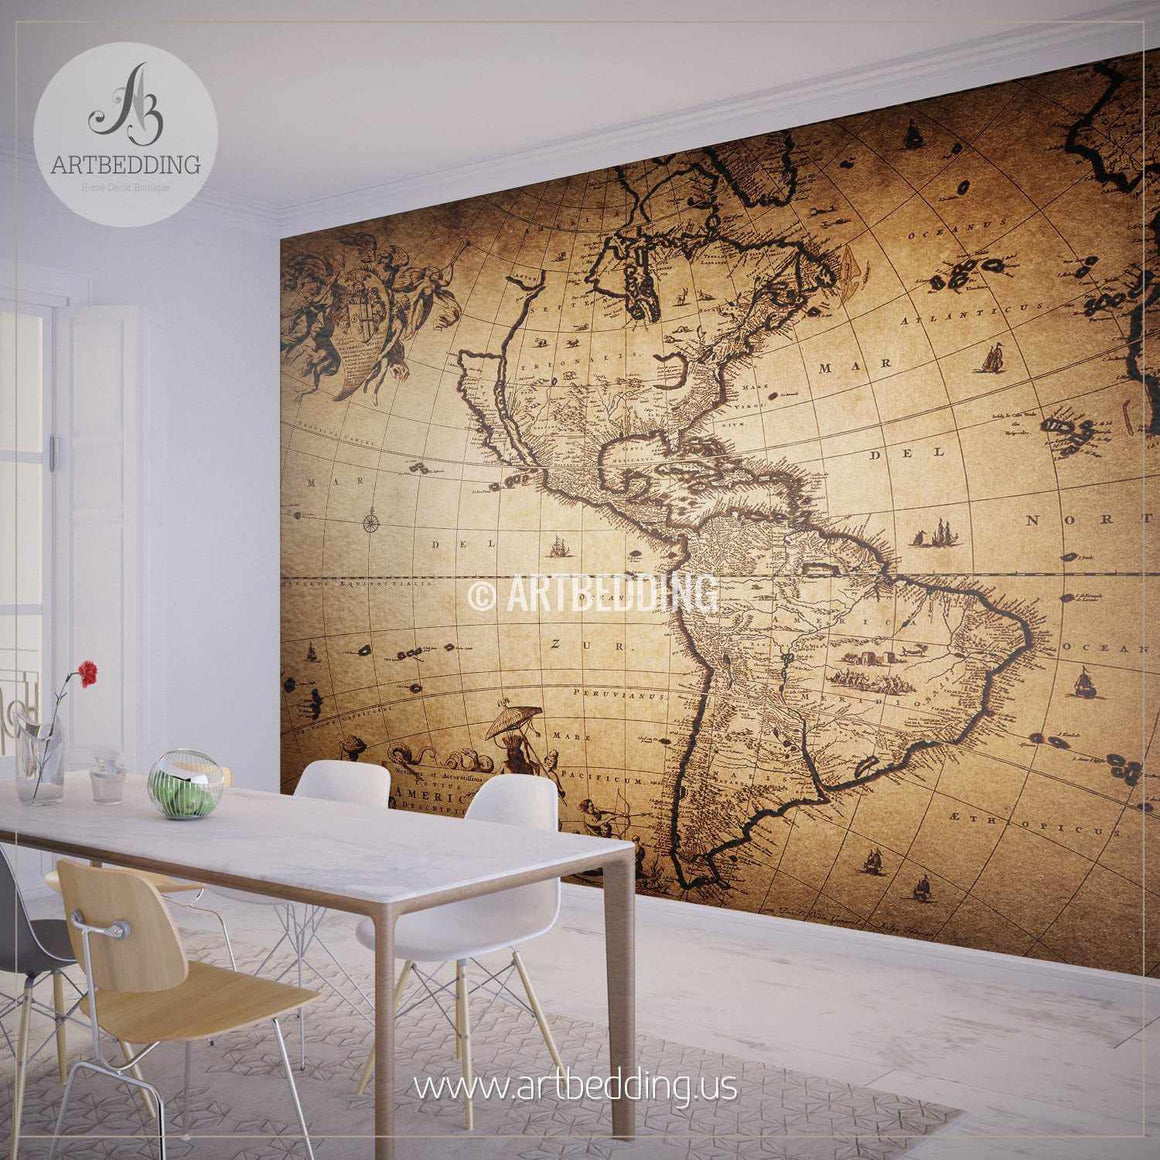 Map of America from 1690 Wall Mural, Self Adhesive Peel & Stick Photo Mural, Atlas wall mural, mural home decor wall mural